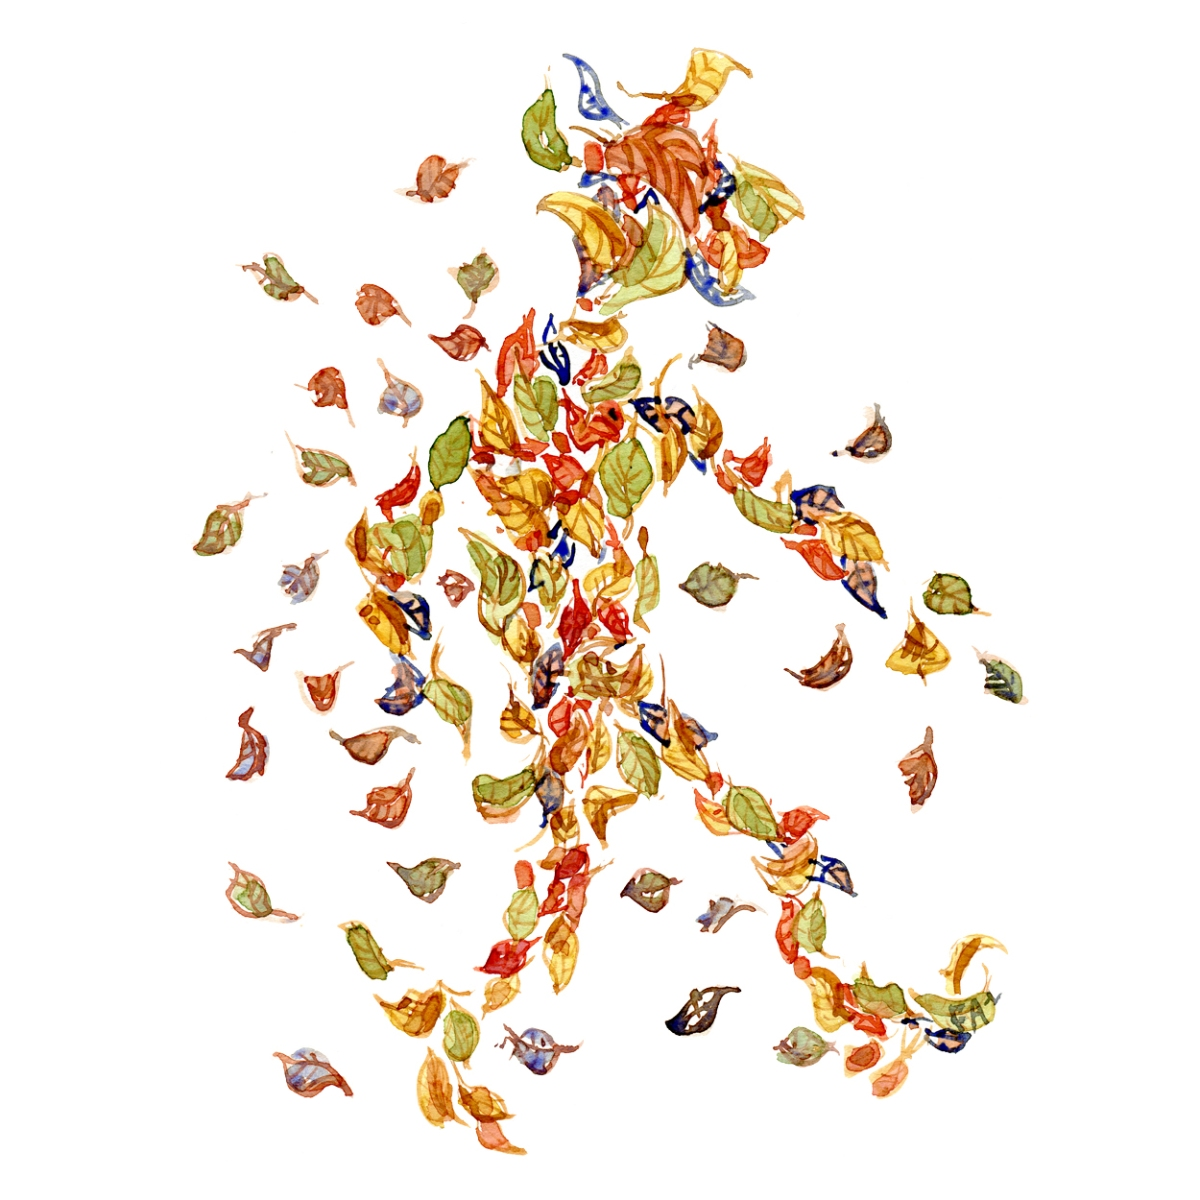 Leaves in the air looking like a person walking